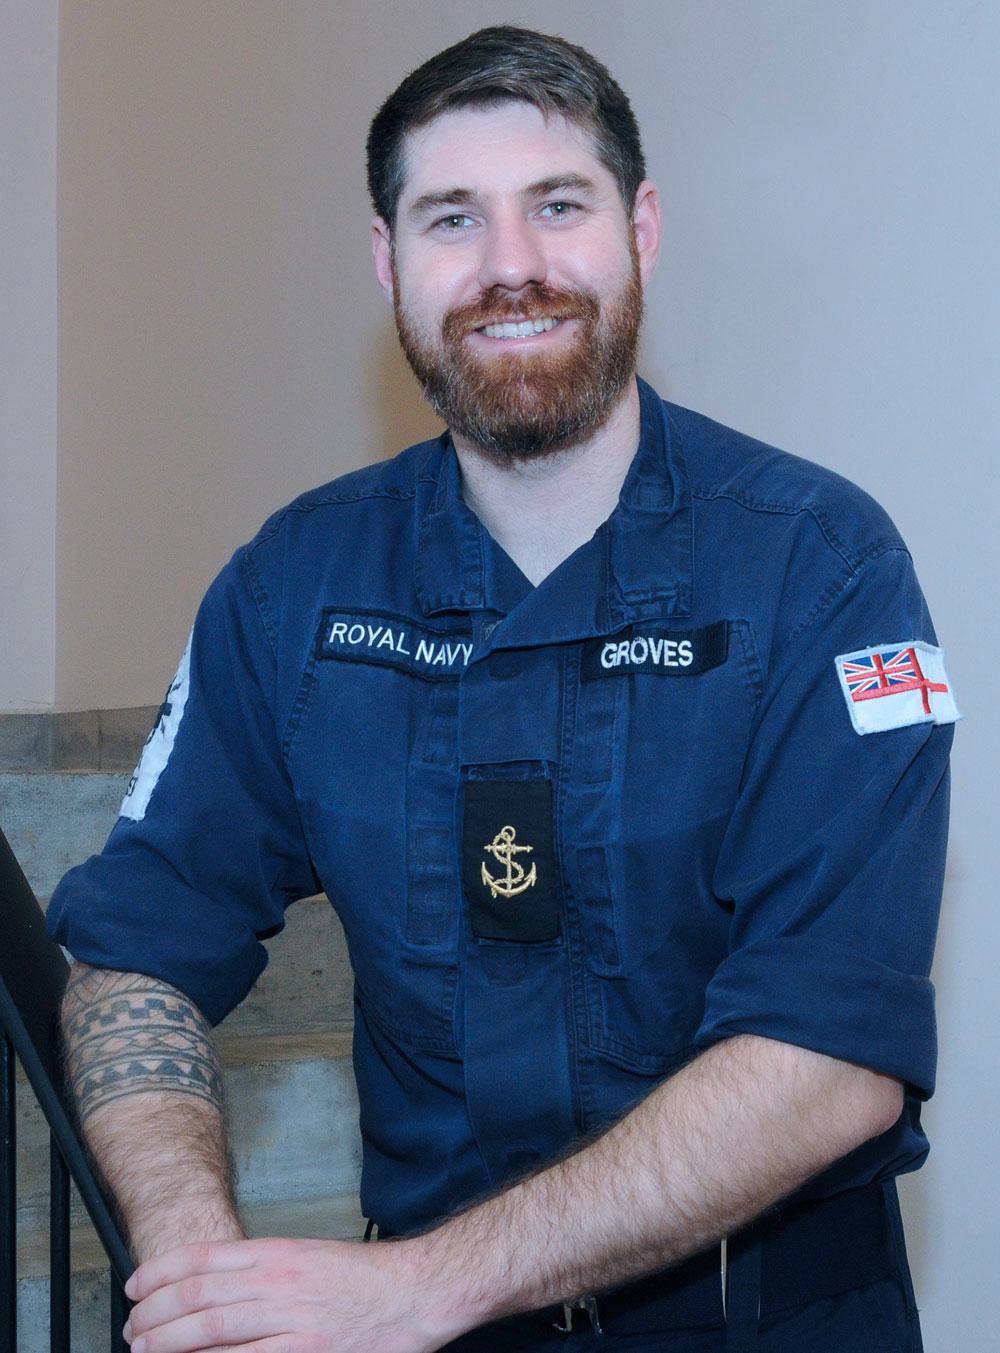 Leading Seaman David Groves